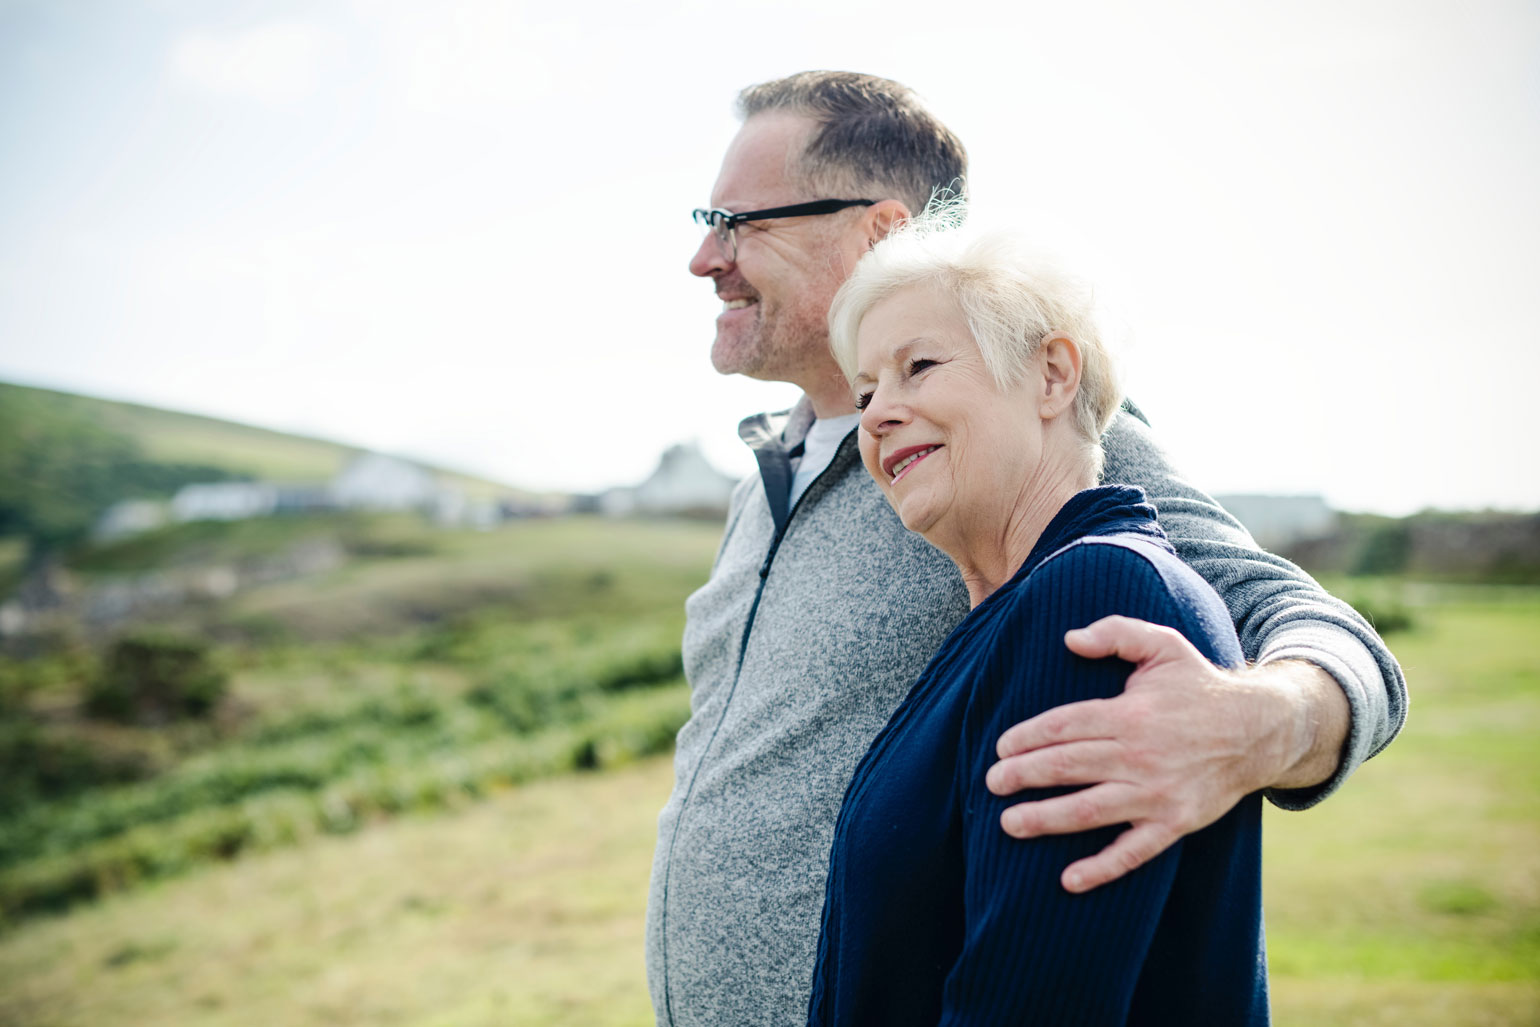 Jersey pensioner assistance